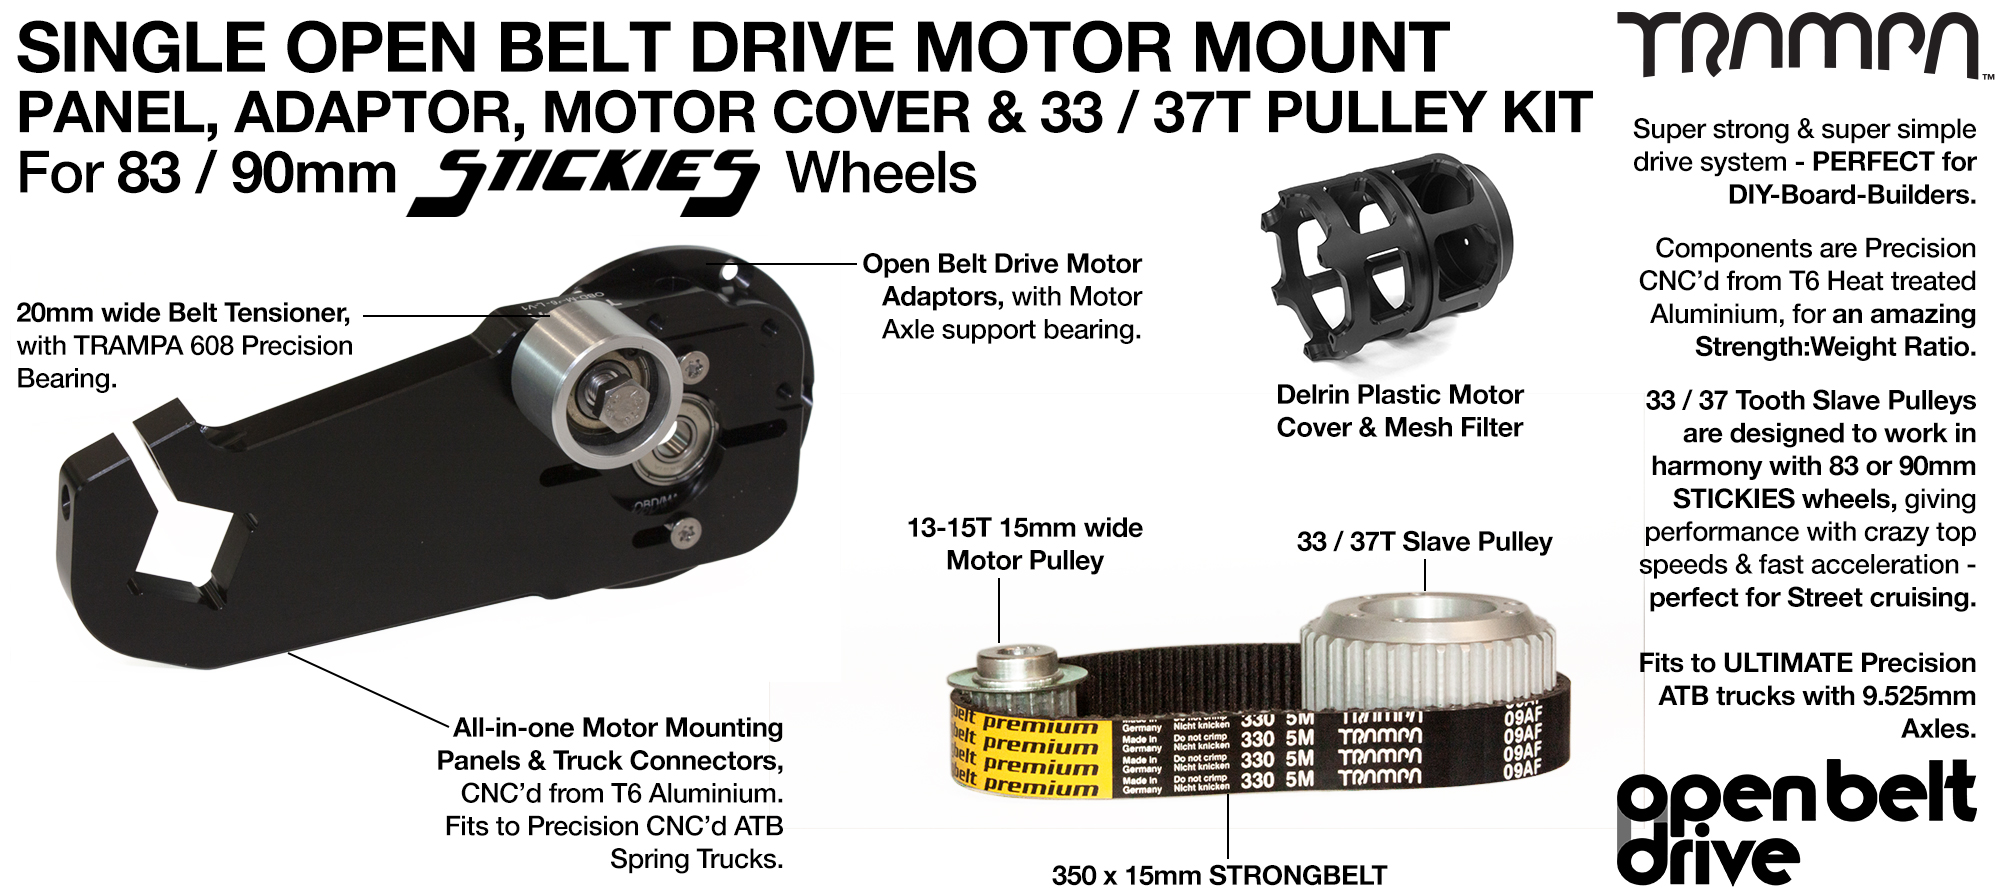 66T OBD Motor Mount with 33 / 37T Pulley kit & Motor Filters - SINGLE